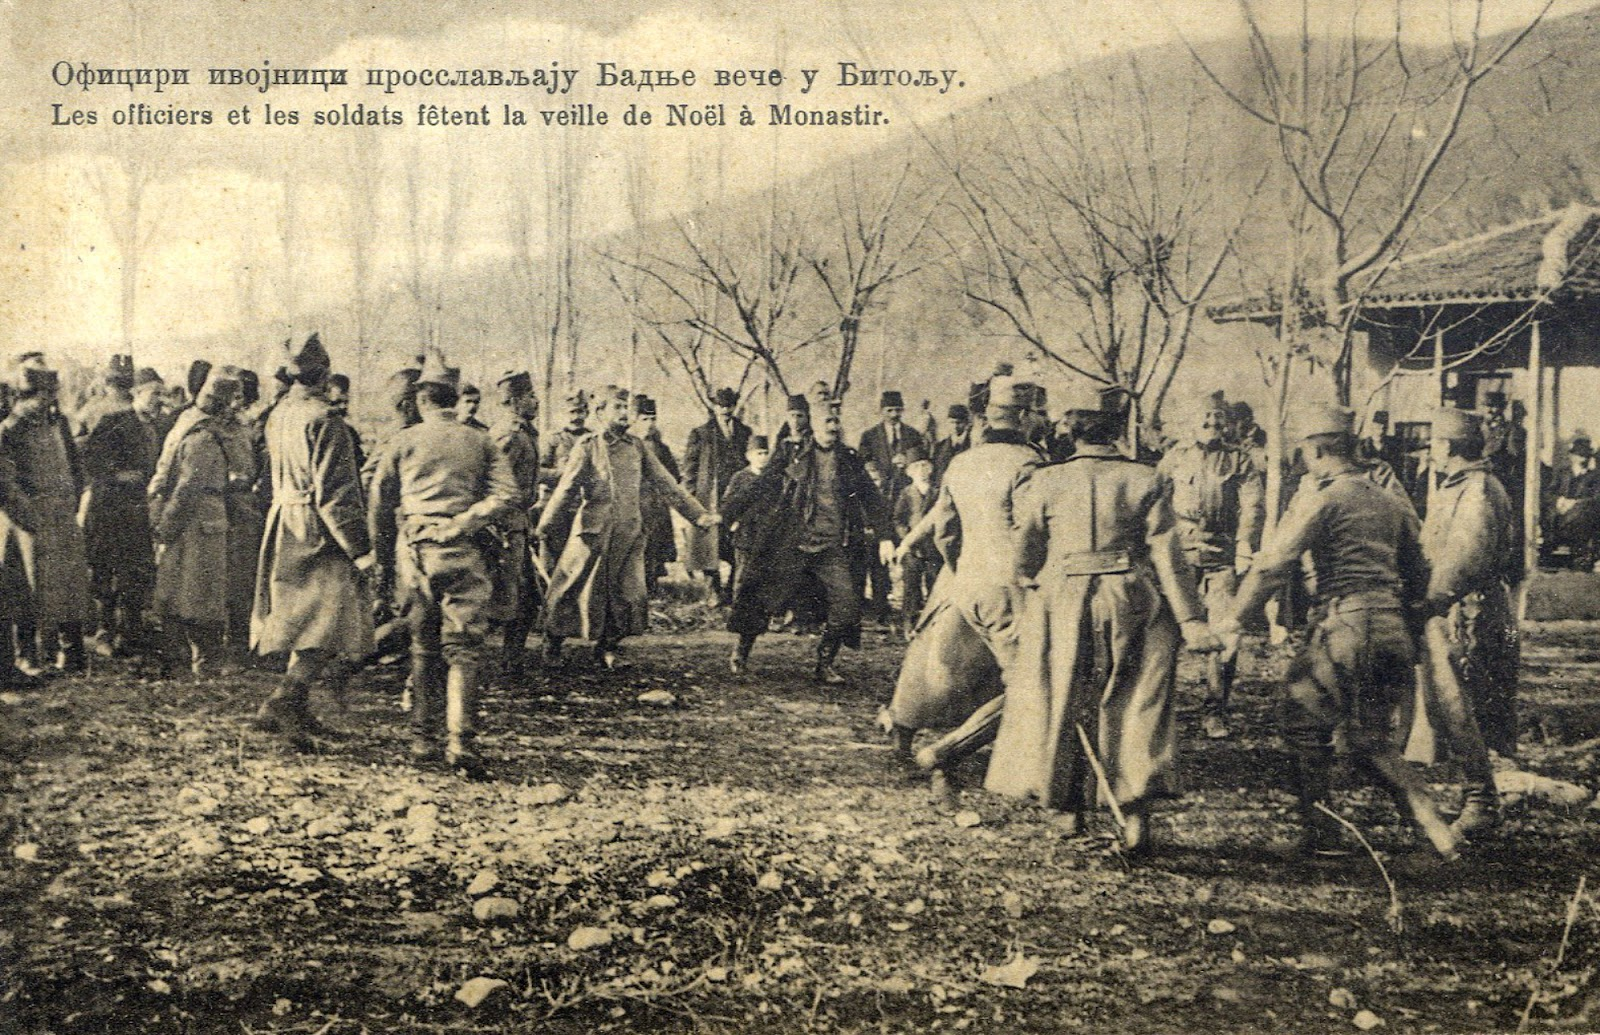 balkan wars Third balkan war: a term suggested by british journalist misha glenny in the title of his book, alluding to the two previous balkan wars fought from 1912-13 in fact, this term has been applied by some contemporary historians to world war i , because they see it as a direct sequel to the 1912-13 balkan wars.